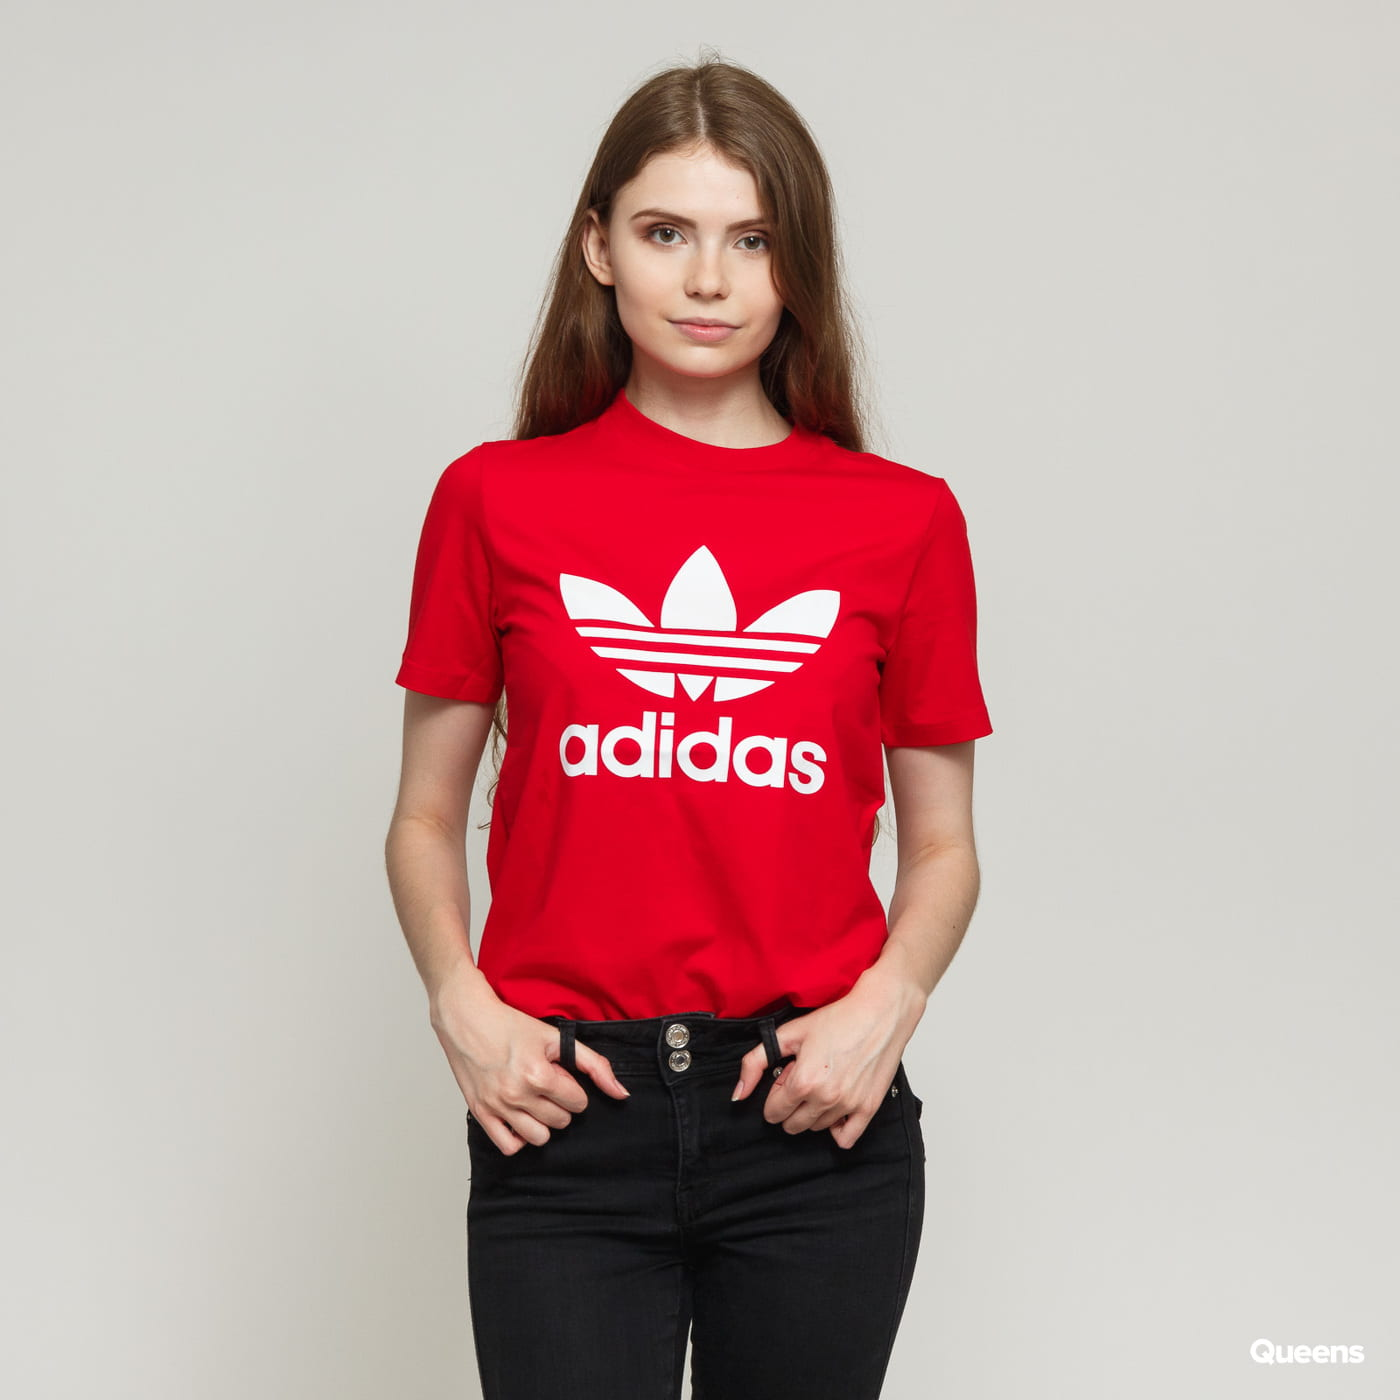 order online united states lace up in Women T-Shirt adidas Originals Trefoil Tee red (ED7493) – Queens 💚